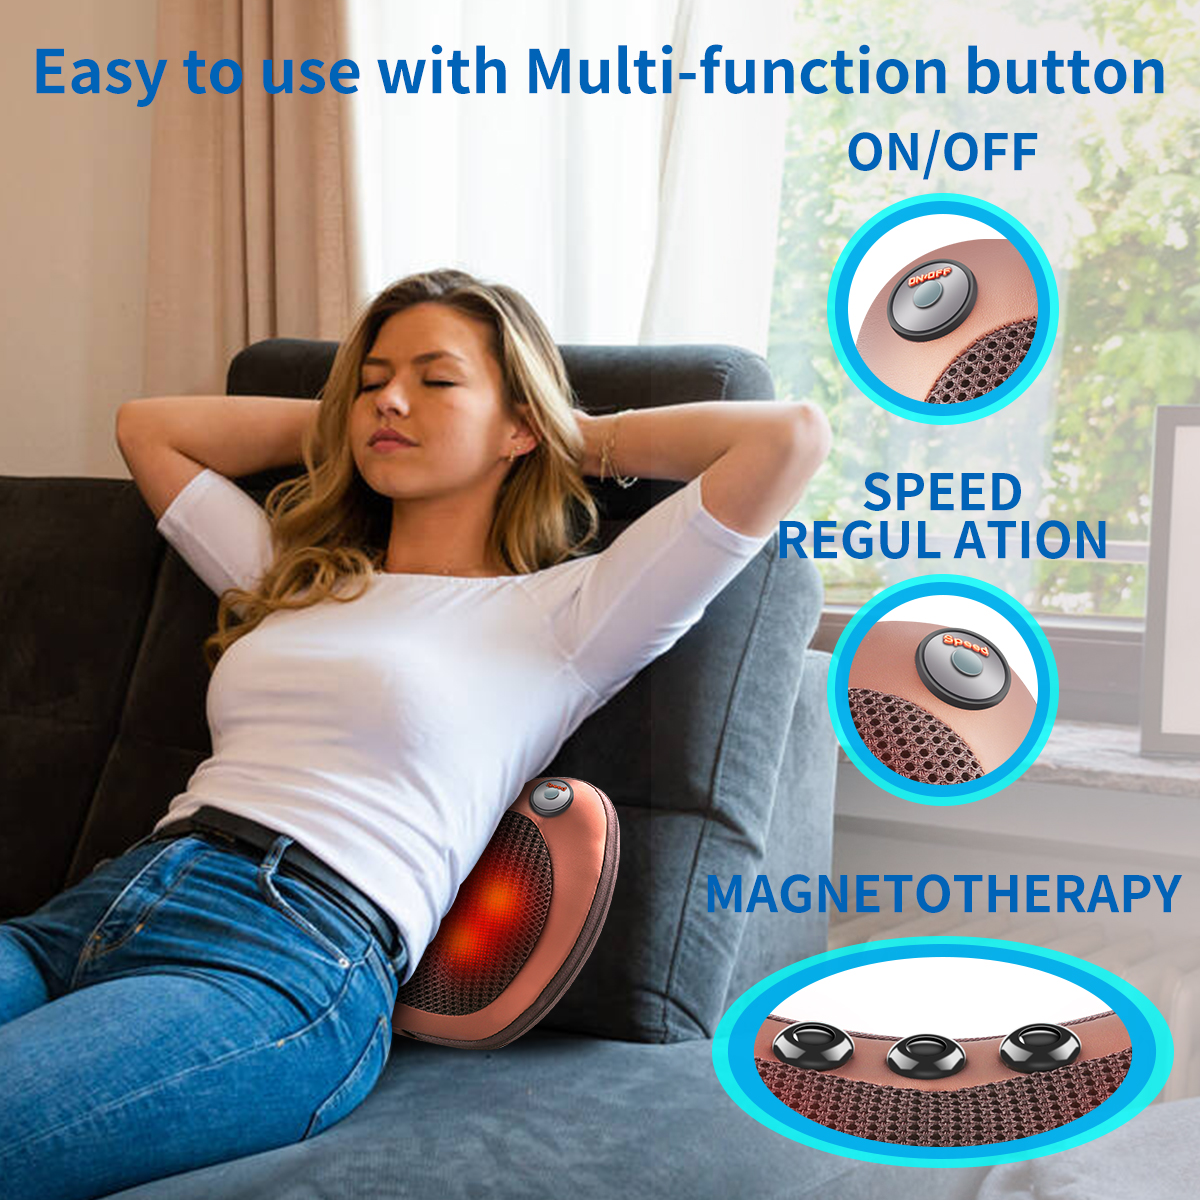 Massage Pillow Relax Vibrator Electric Shoulder Back Heating Kneading Infrared therapy shiatsu Neck Massager